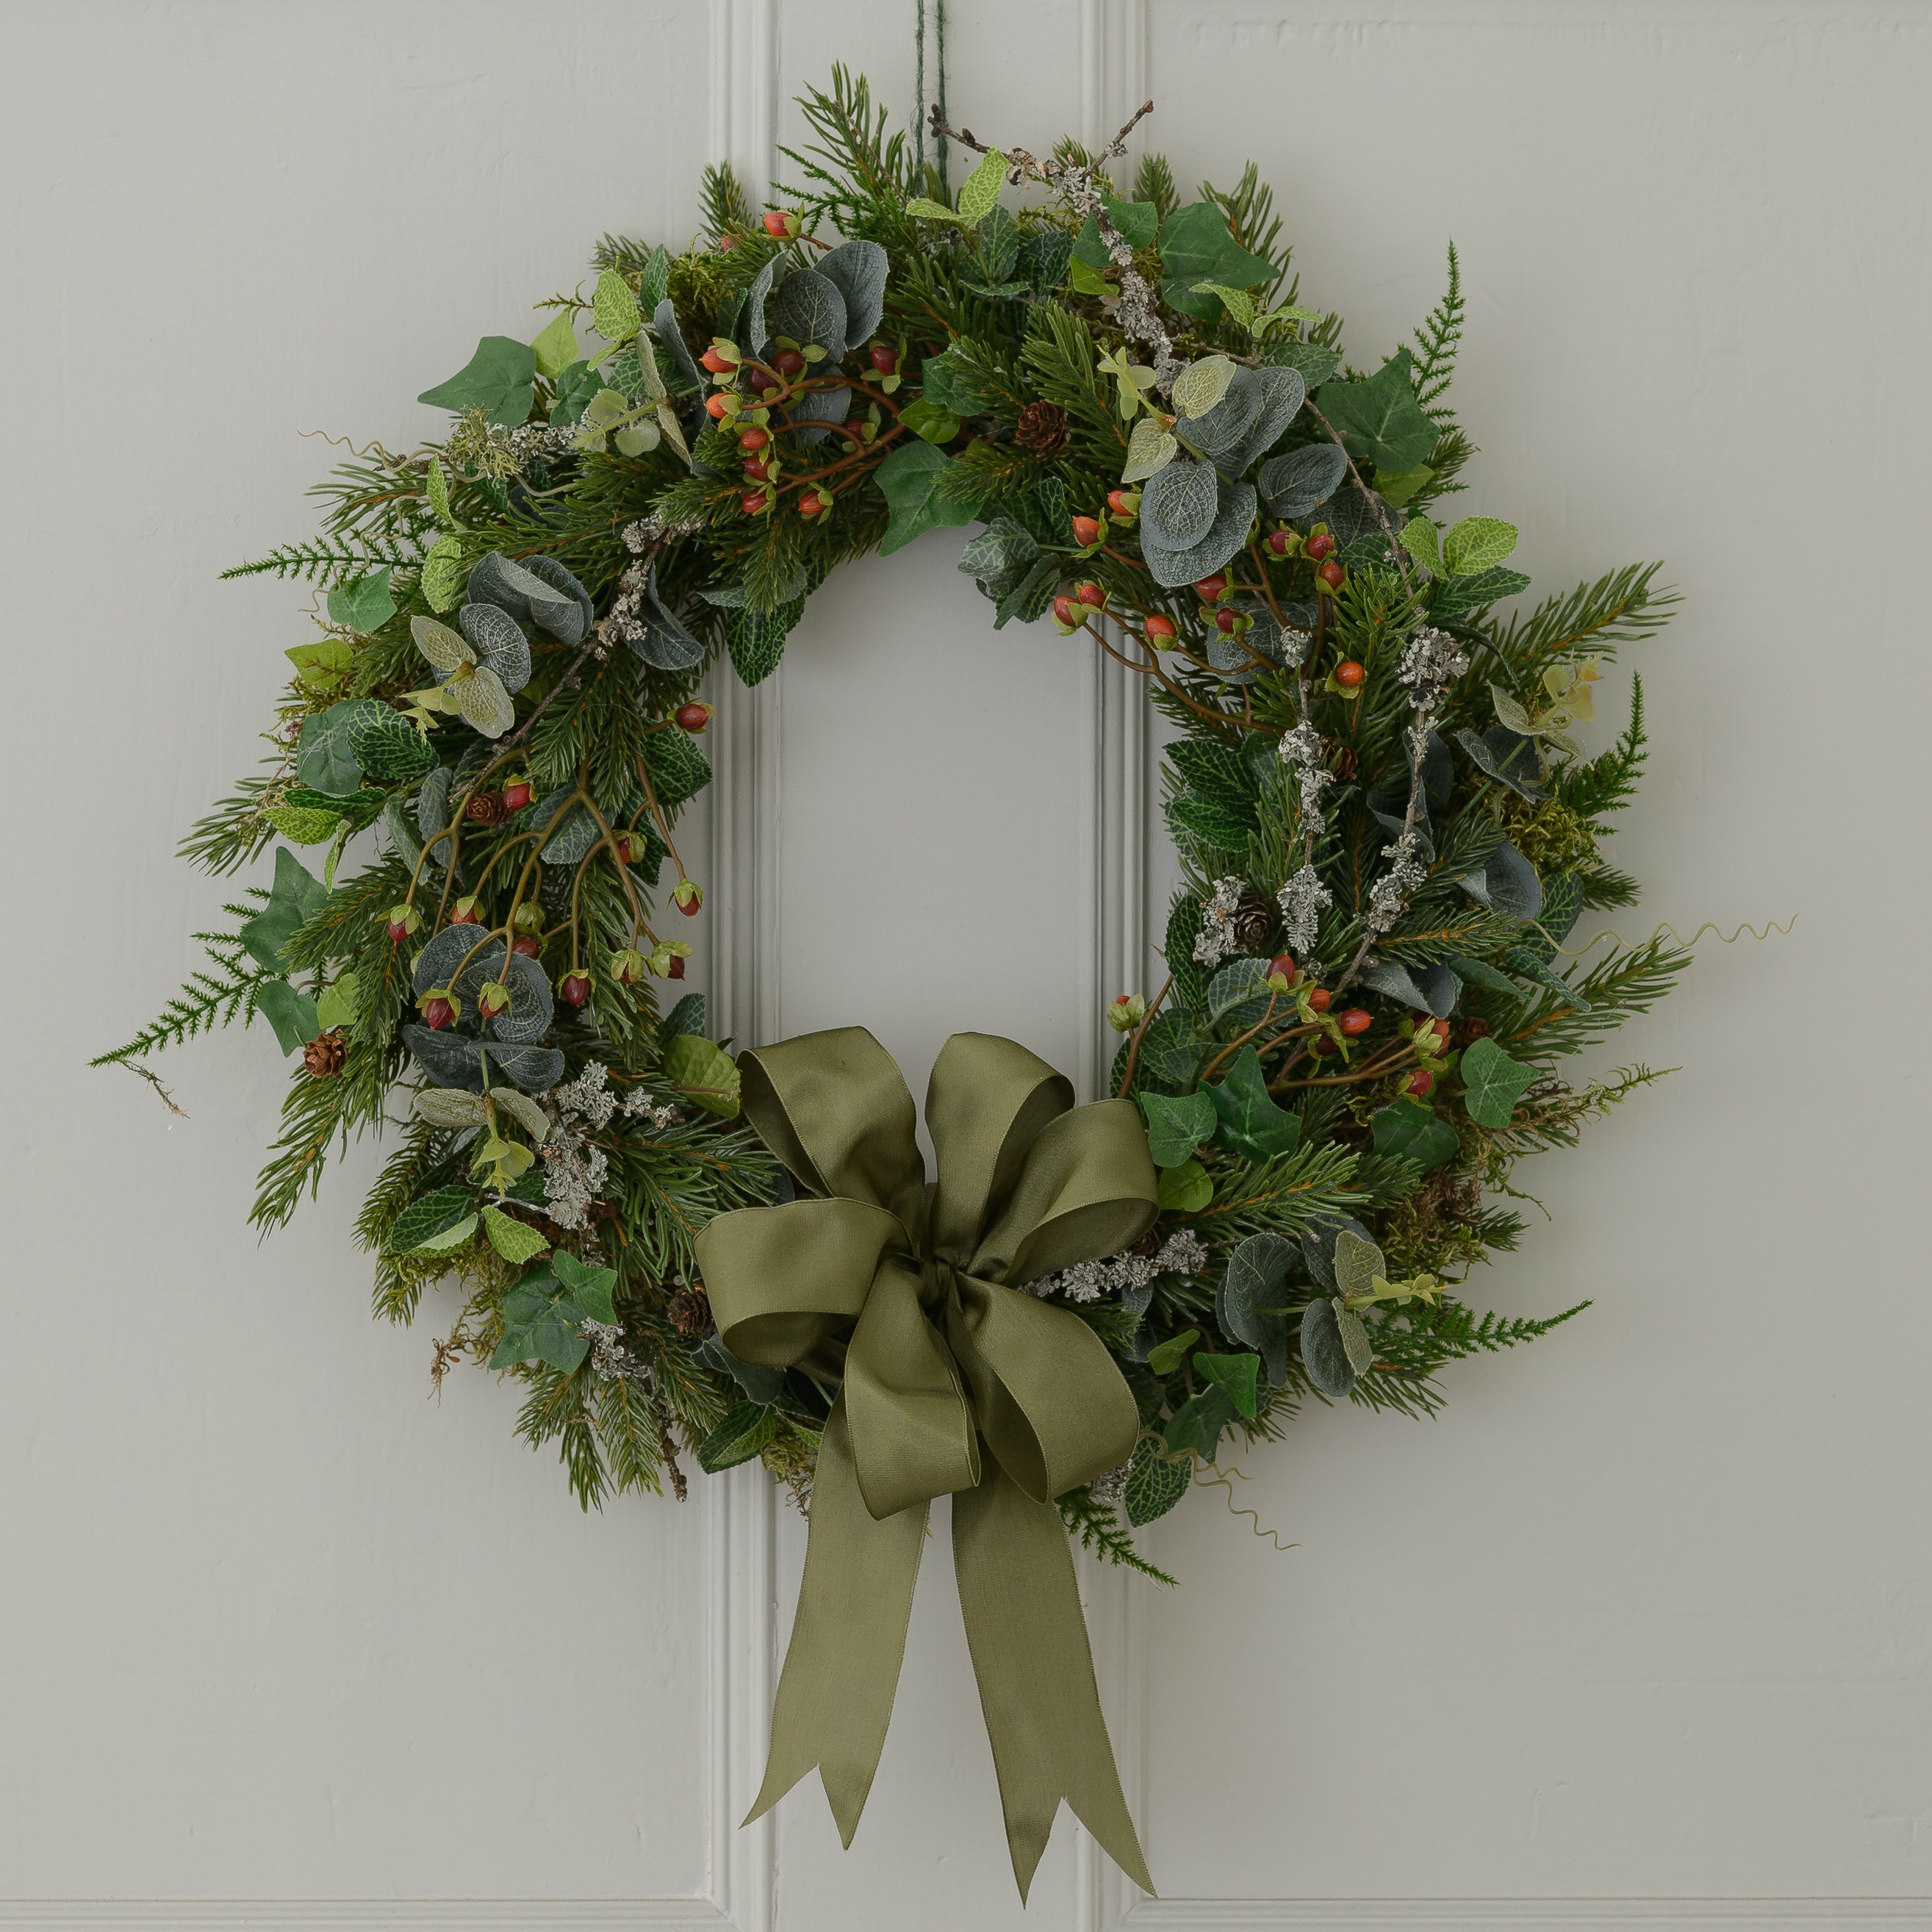 Luxury Fresh Christmas Door Wreaths Christmas Wreaths